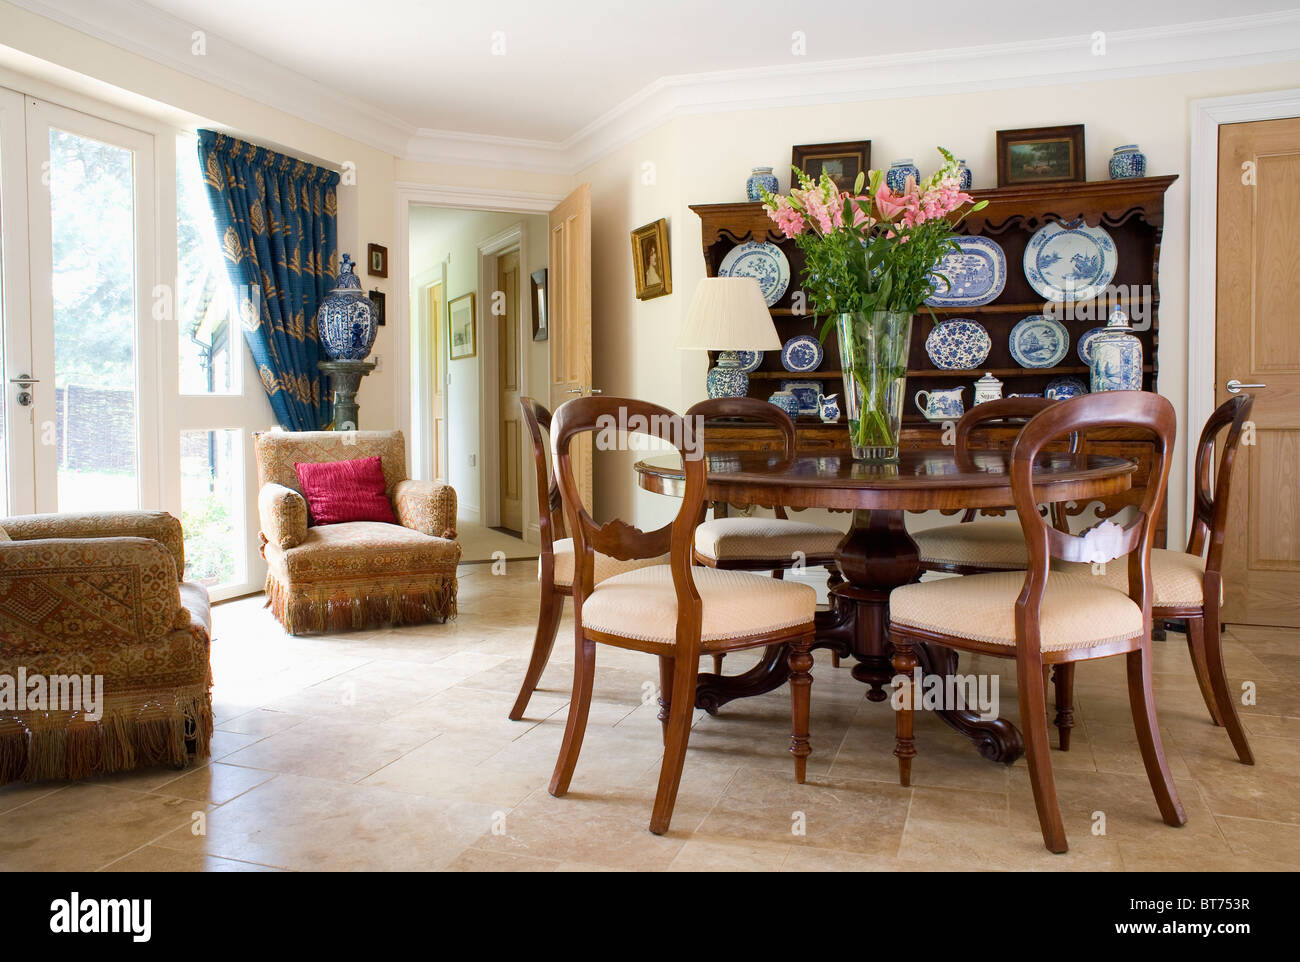 Antique circular table with antique balloon-back chairs in country dining  room extension with limestone flooring - Antique Circular Table With Antique Balloon-back Chairs In Country